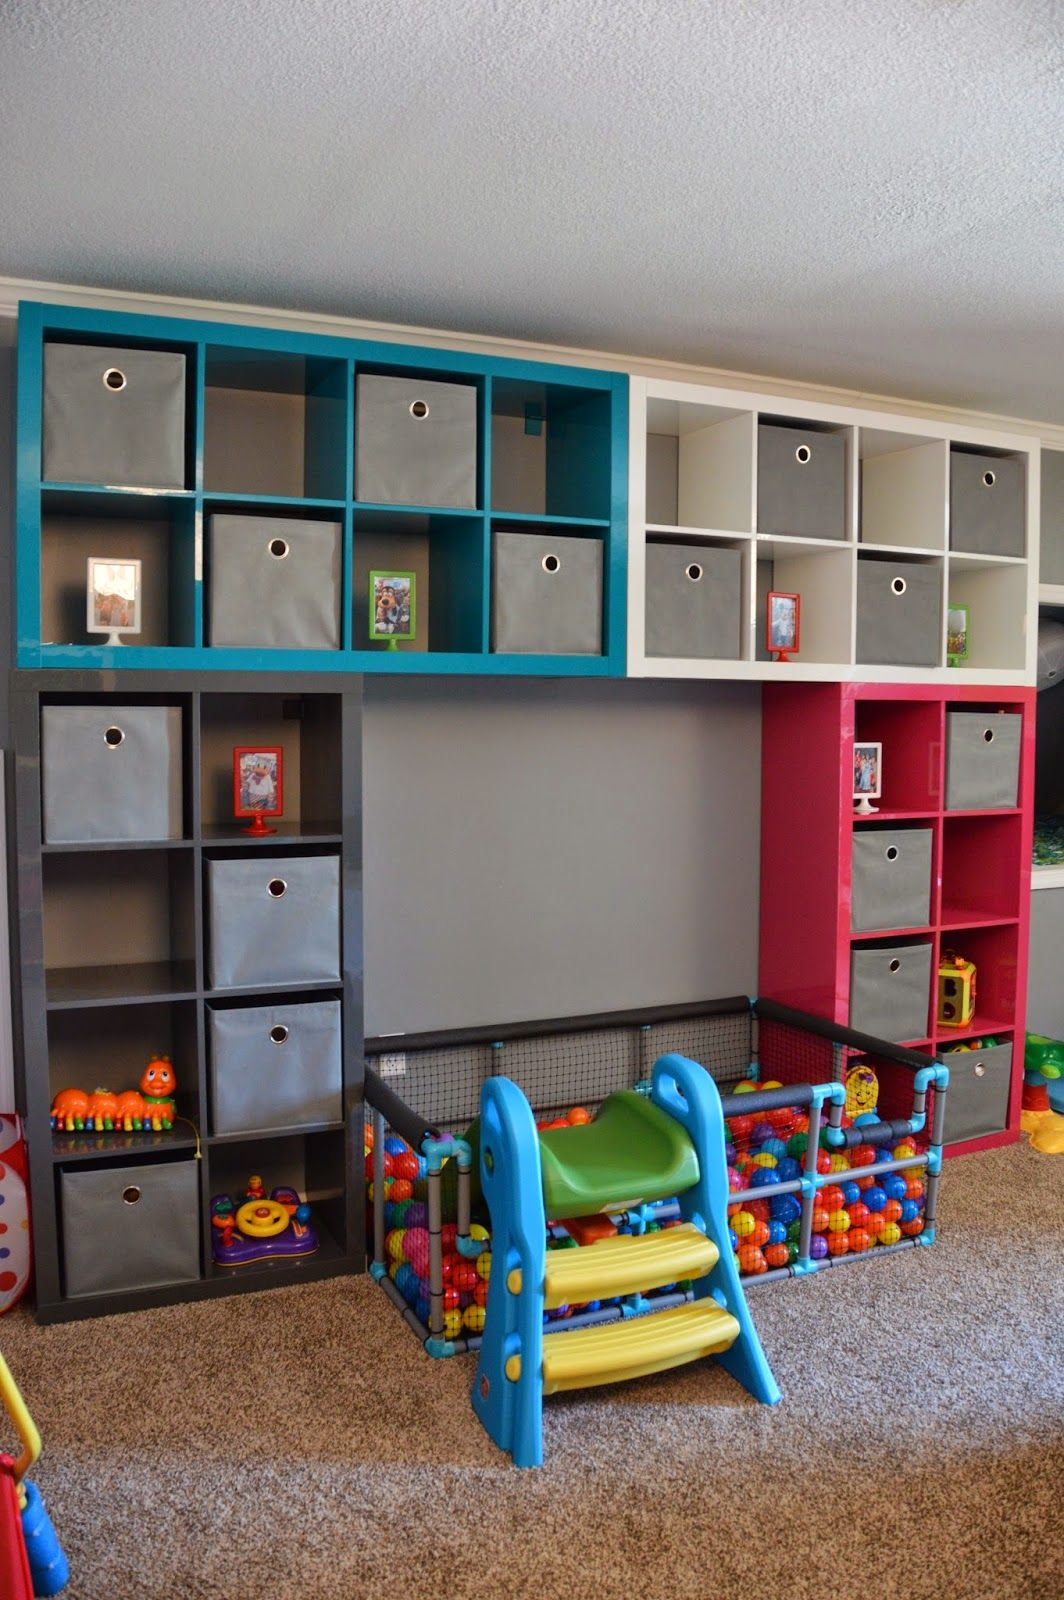 Tour Of Our Home Playroom Toy Rooms Ikea Kids Playroom Boy Room